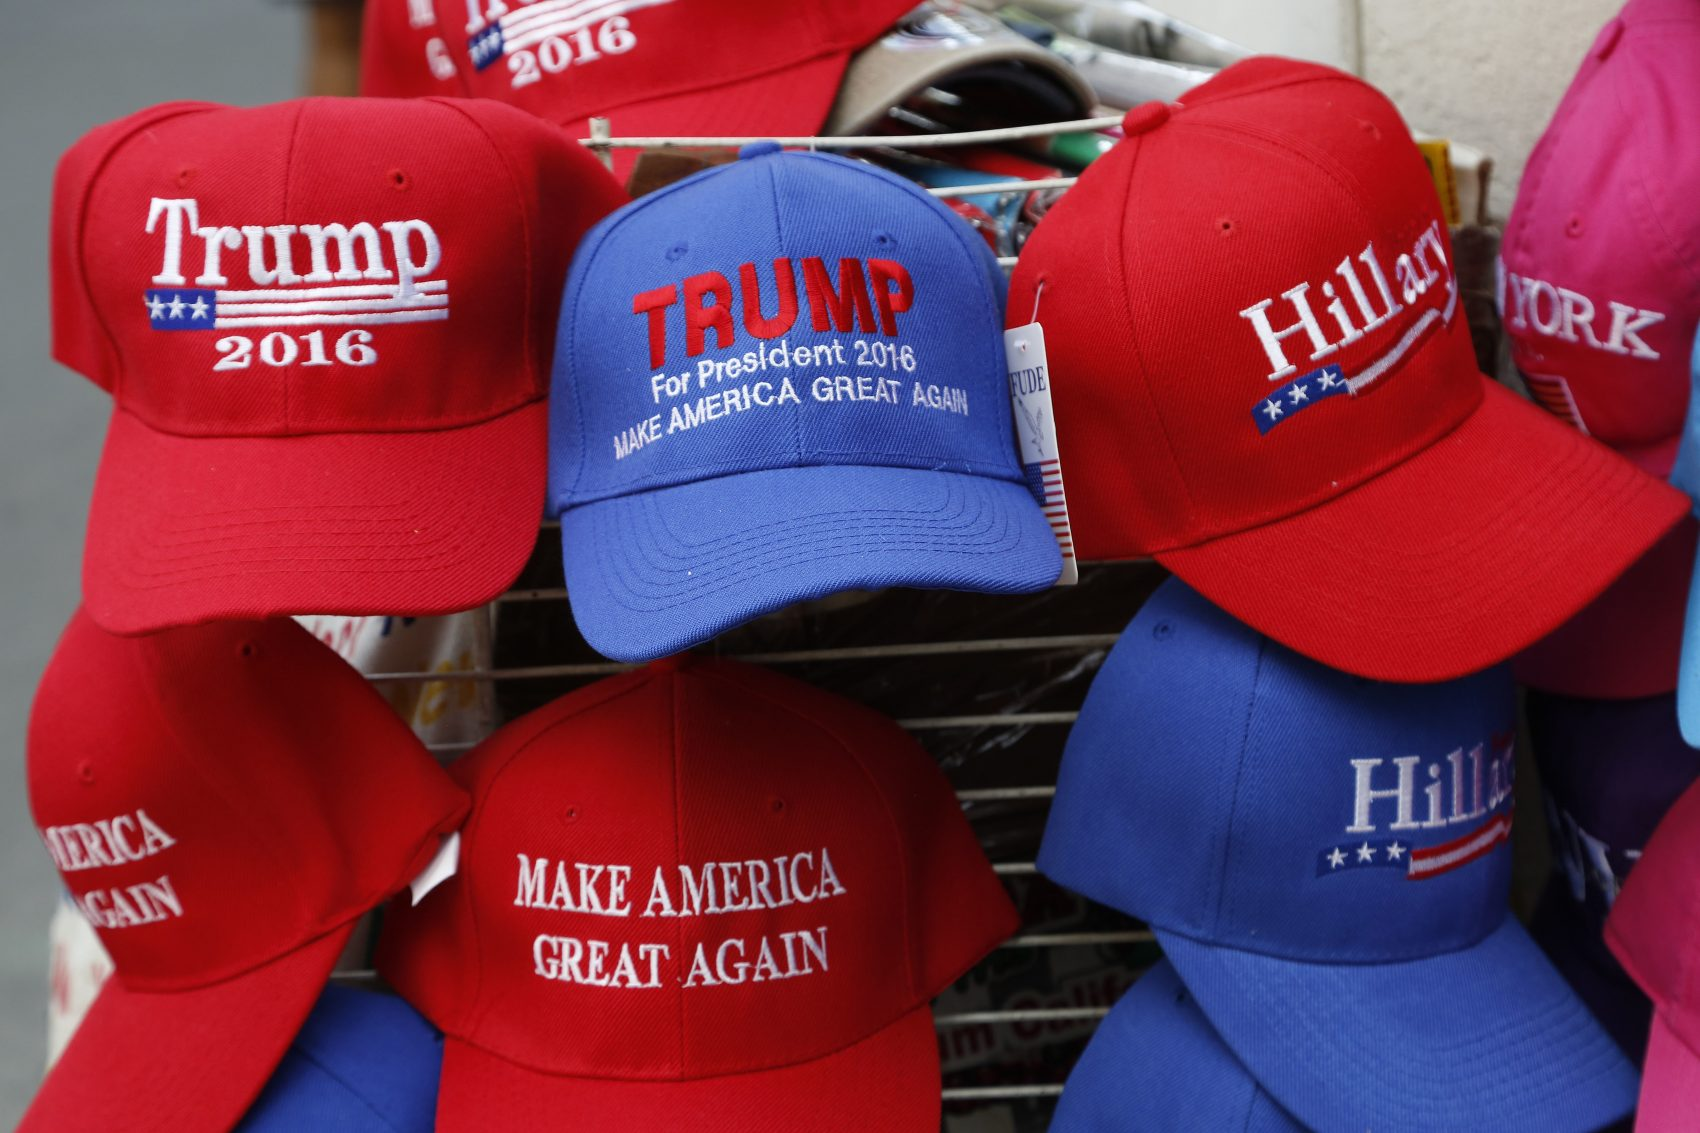 After all, we have at least three and a half more years of this administration, and that's a lot of tweets, write Jason Jay and Gabriel Grant. Pictured: Hats displaying support for  presidential candidates Donald Trump and Hillary Clinton in August 2016. (Mark Lennihan/AP)